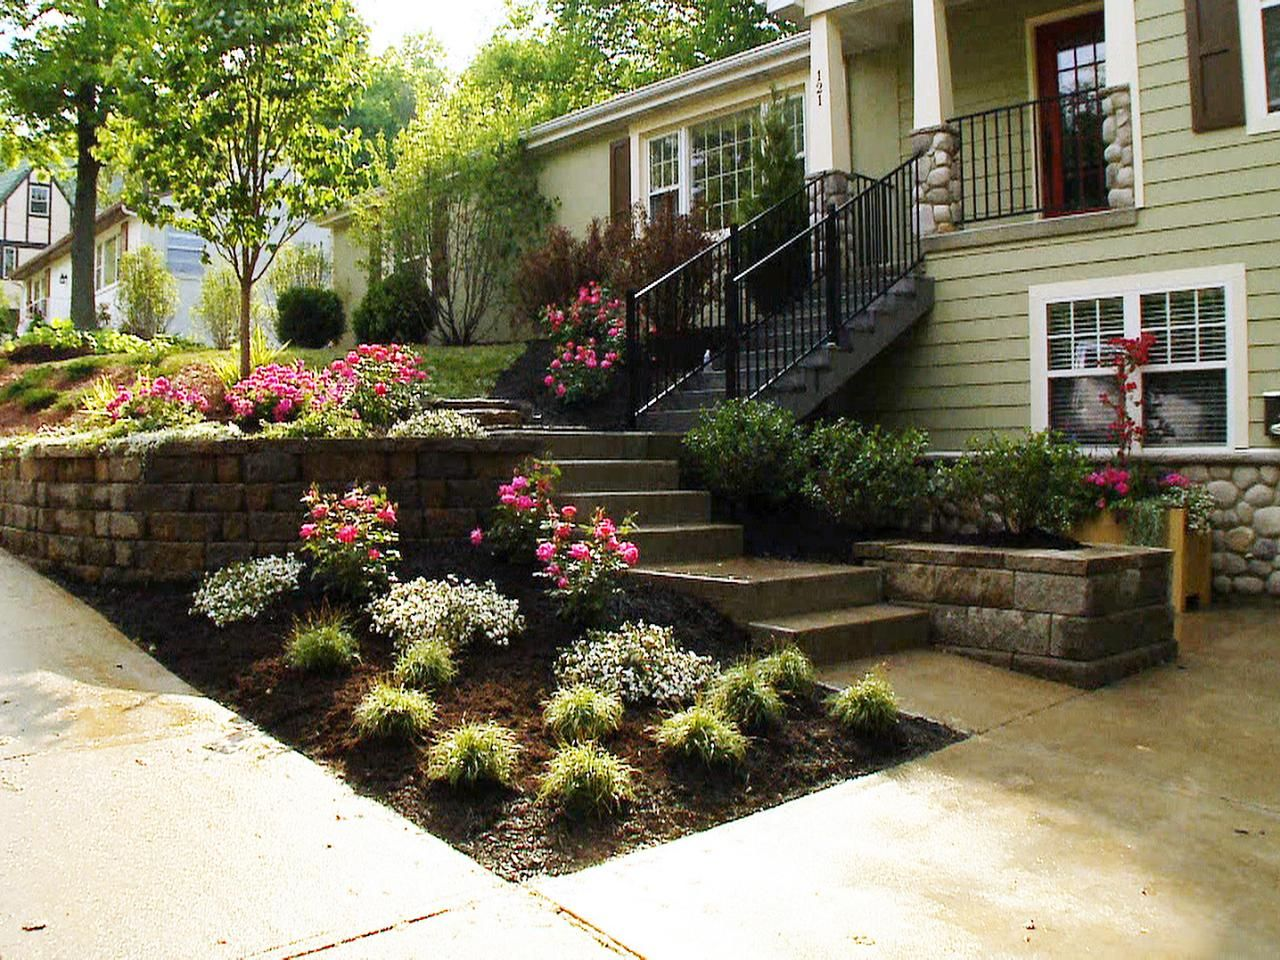 Landscape ideas for sloped areas in shade - Missouri Front Yard Landscape Design In Shade Google Search